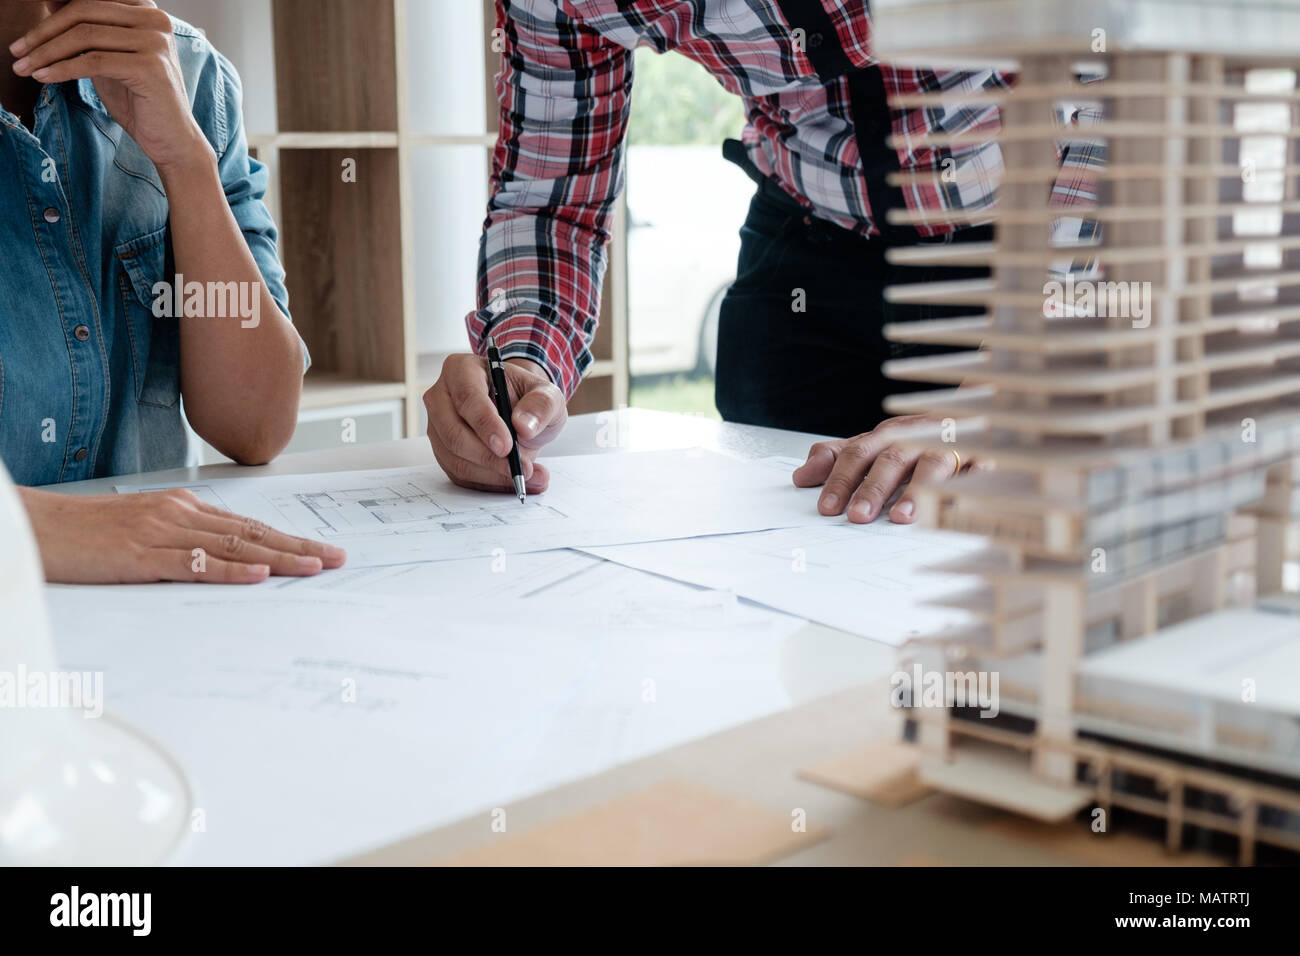 Architecte Ingénieur Design Le concept de planification sur le plan. Concept de construction Photo Stock